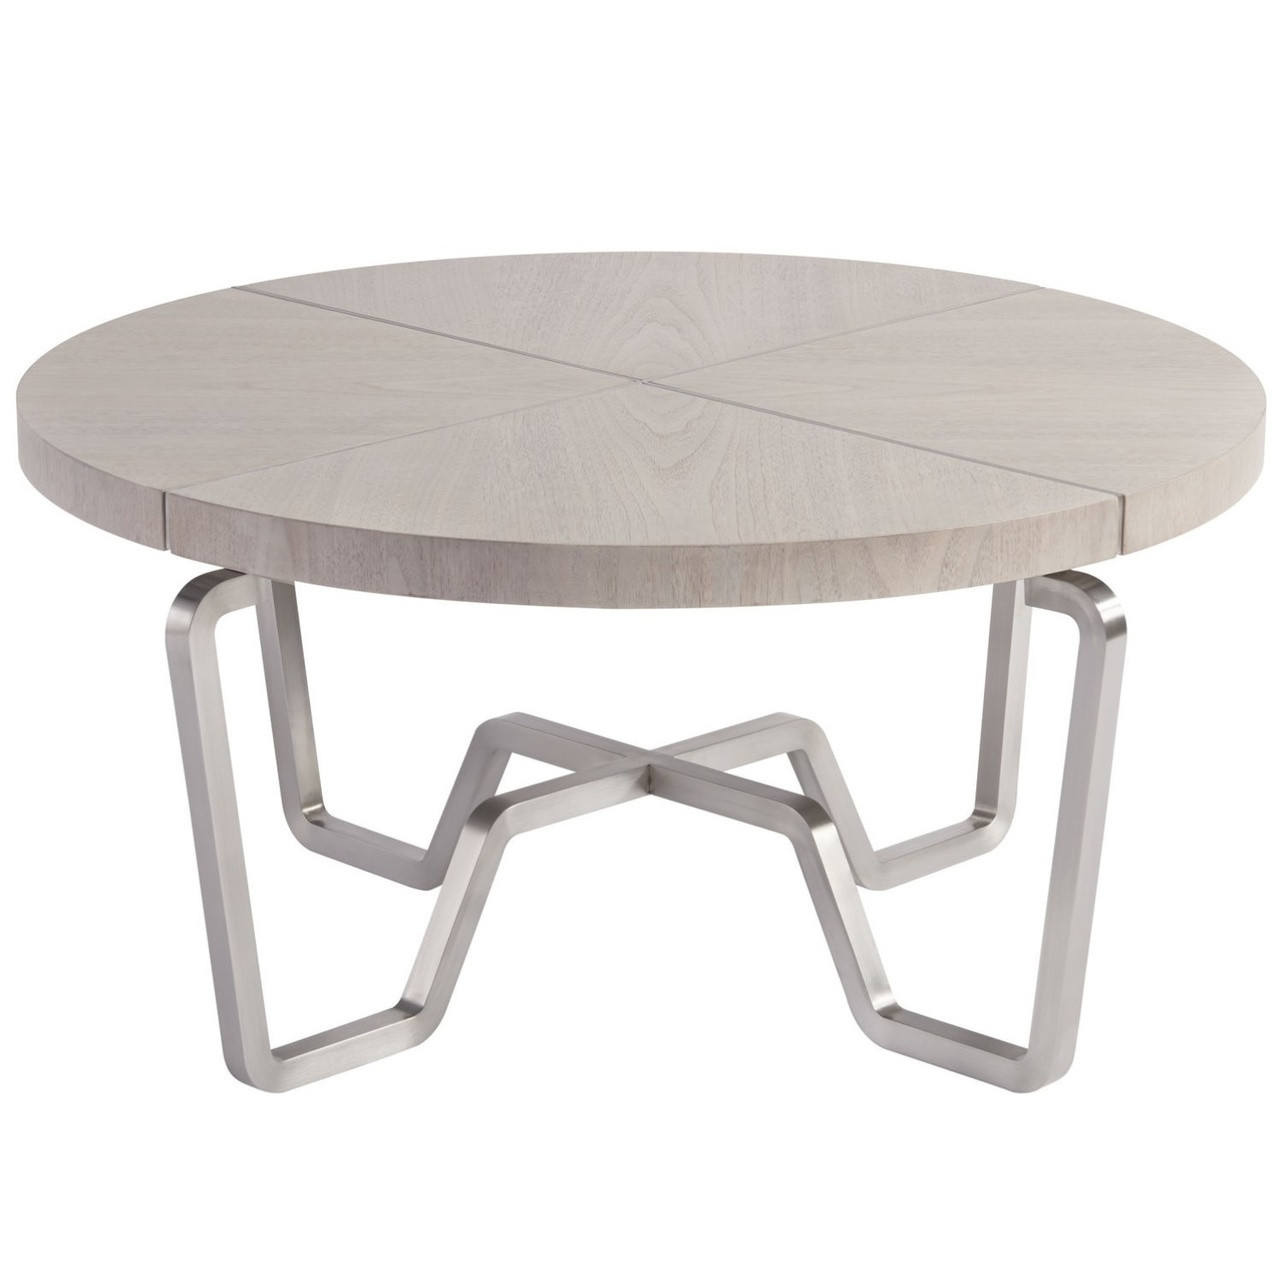 - Urban Modern Mist Gray Round Coffee Table 36